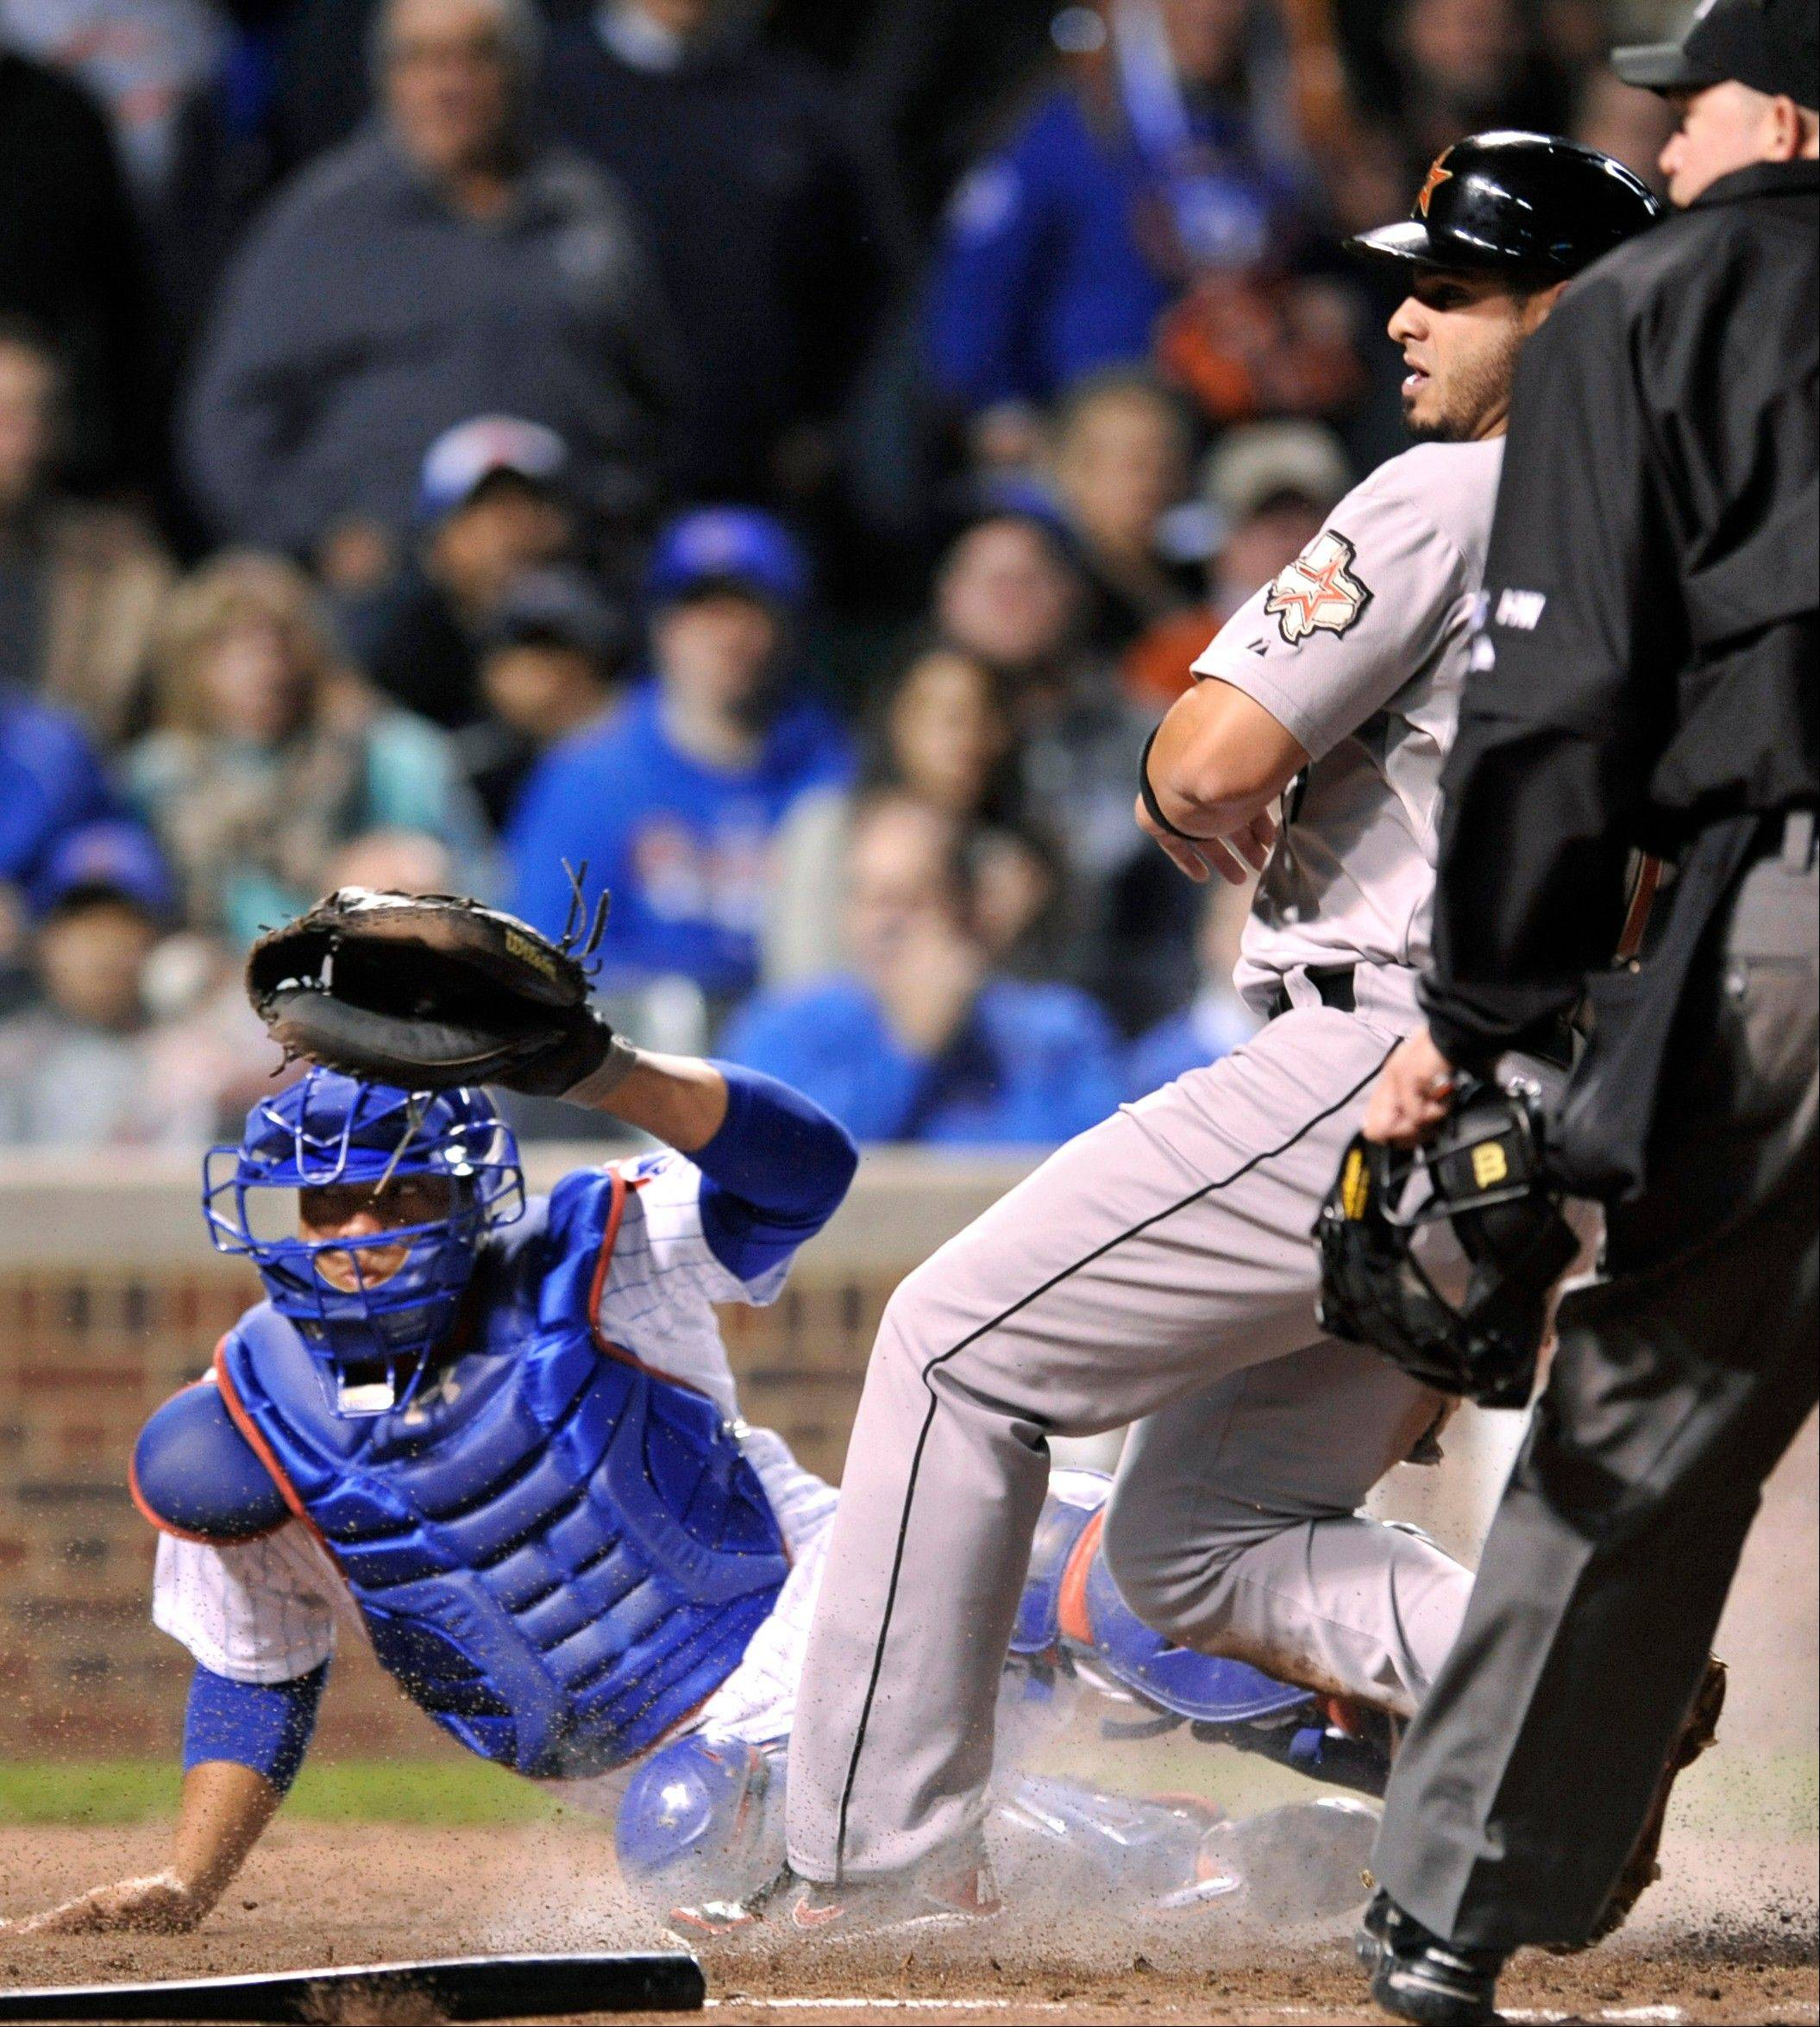 Houston Astros' Fernando Martinez center, crosses home plate safely as Chicago Cubs catcher Welington Castillo left, misses the throw and home plate umpire Ron Kulpa looks on in the fourth inning during a baseball game in Chicago, Monday, Oct. 1, 2012. Houston won 3-0.